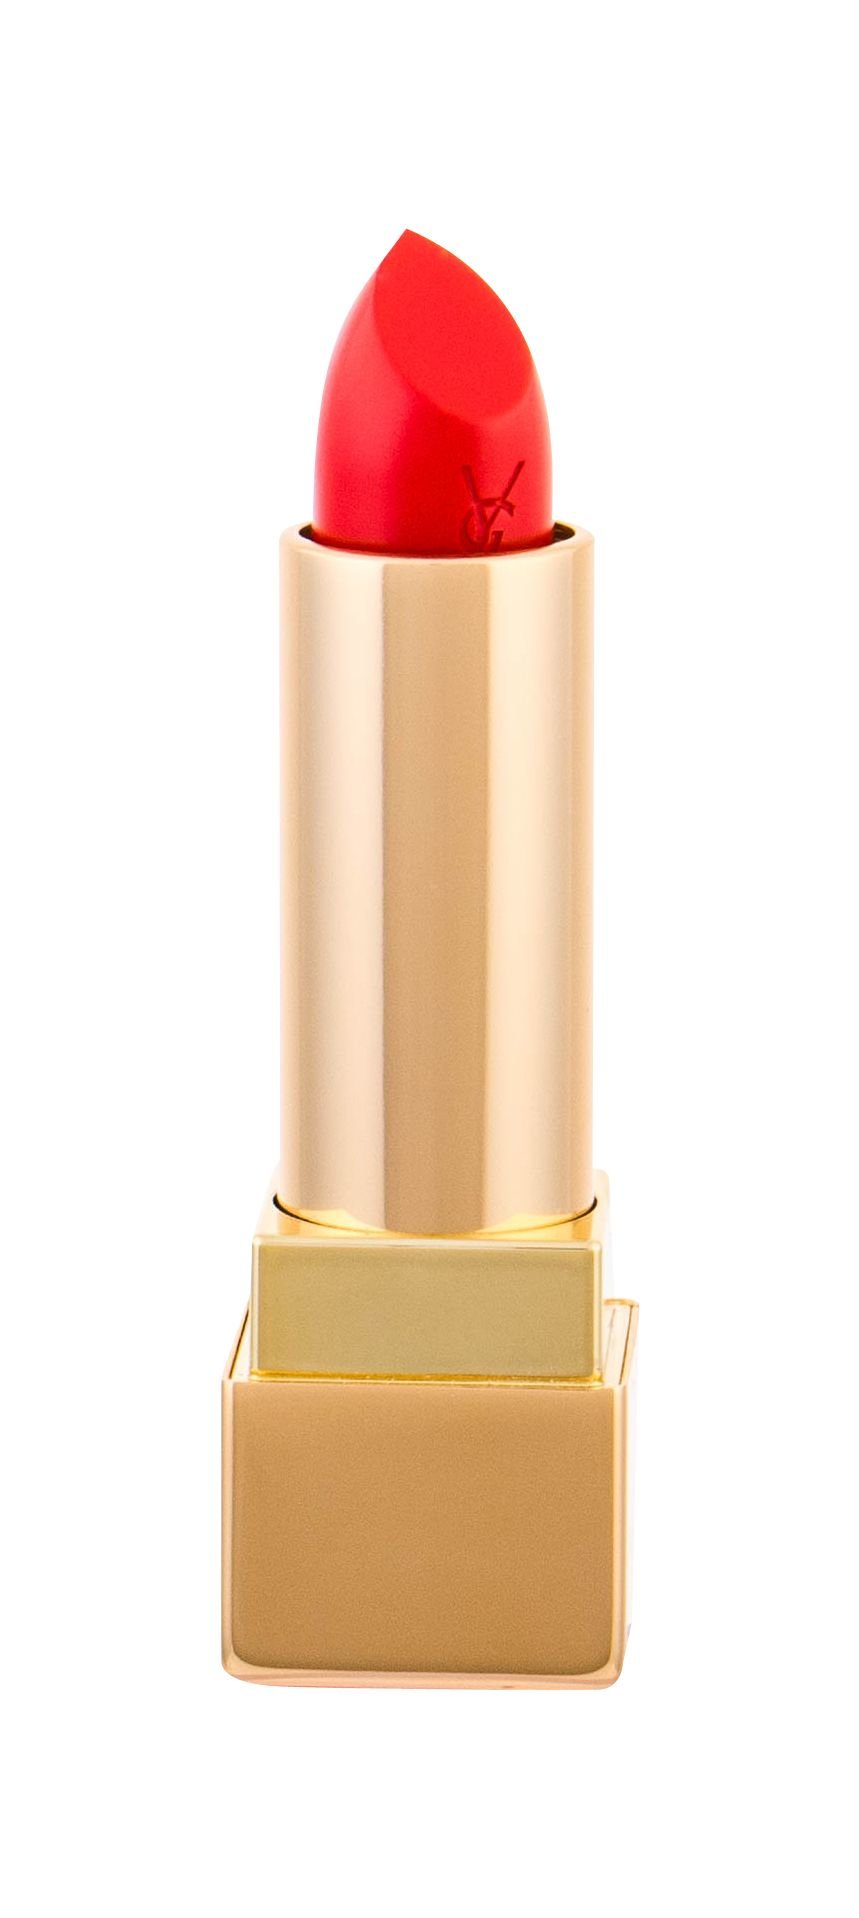 Yves Saint Laurent Rouge Pur Couture Lipstick 3,8ml 50 Rouge Neon